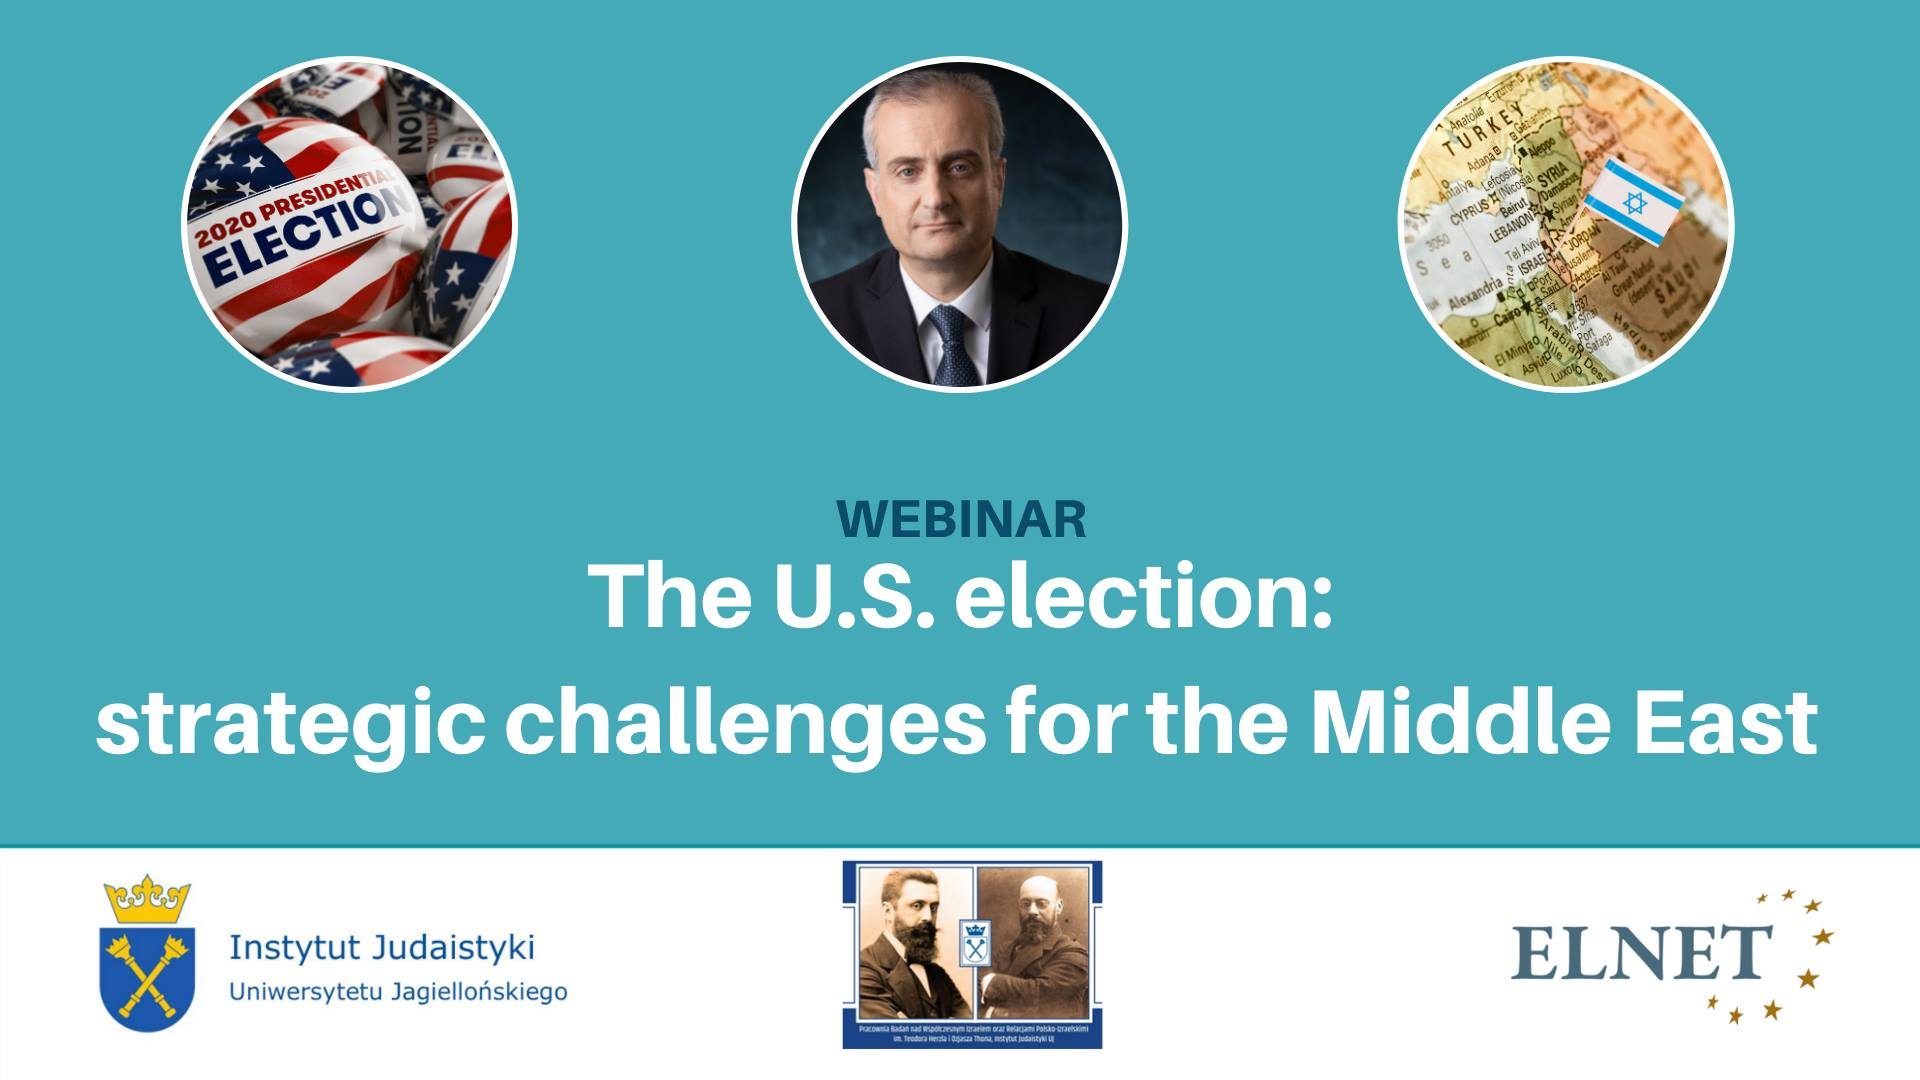 Webinar: The U.S. election: strategic challenges for the Middle East